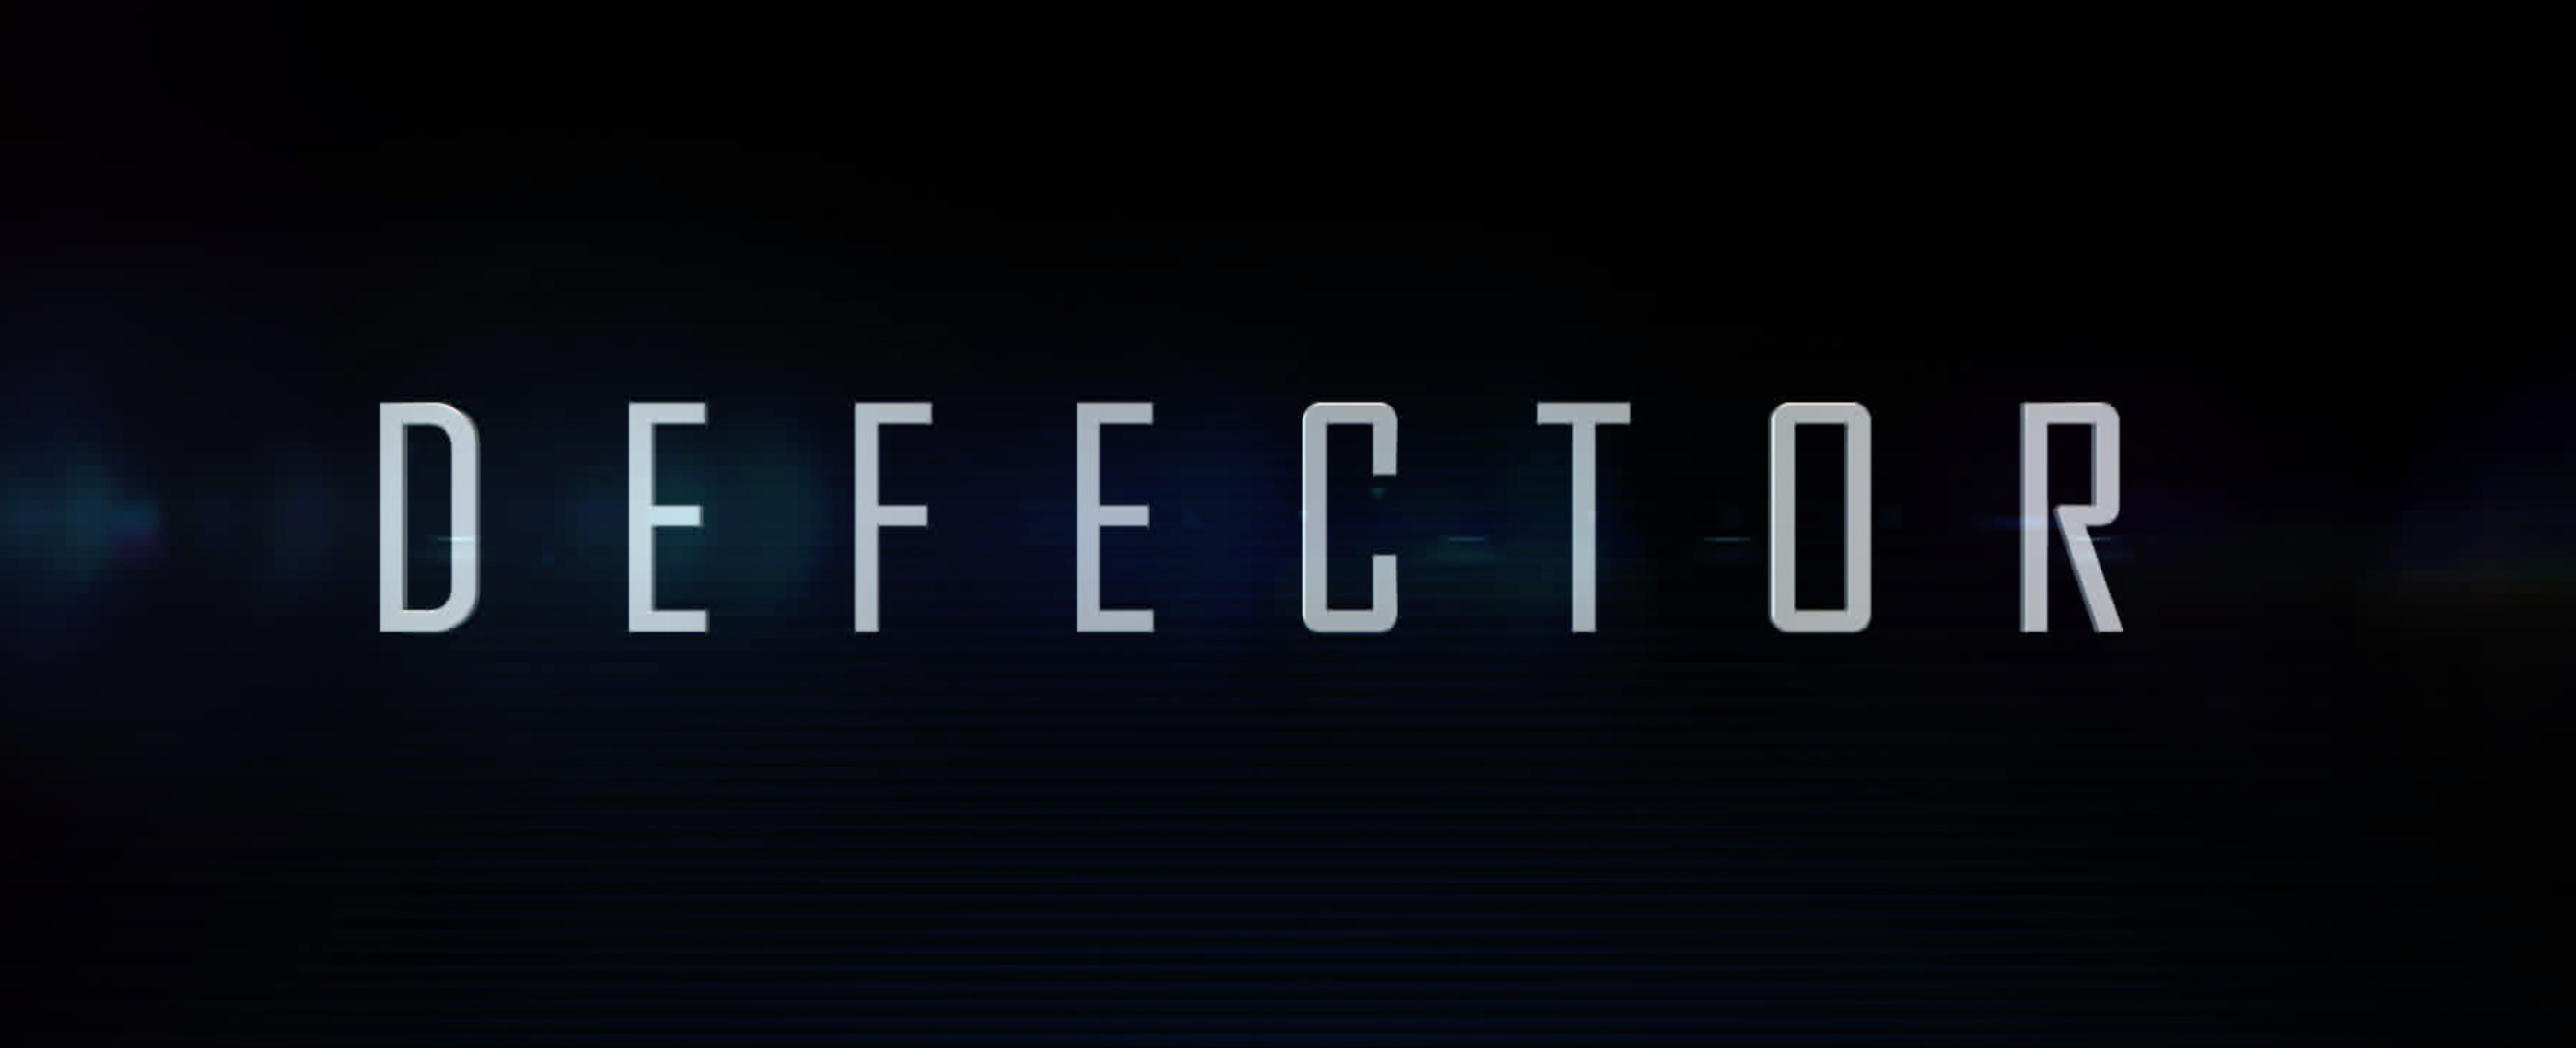 Twisted Pixel's New VR Title 'Defector' Announced; Launching Sometime This Year